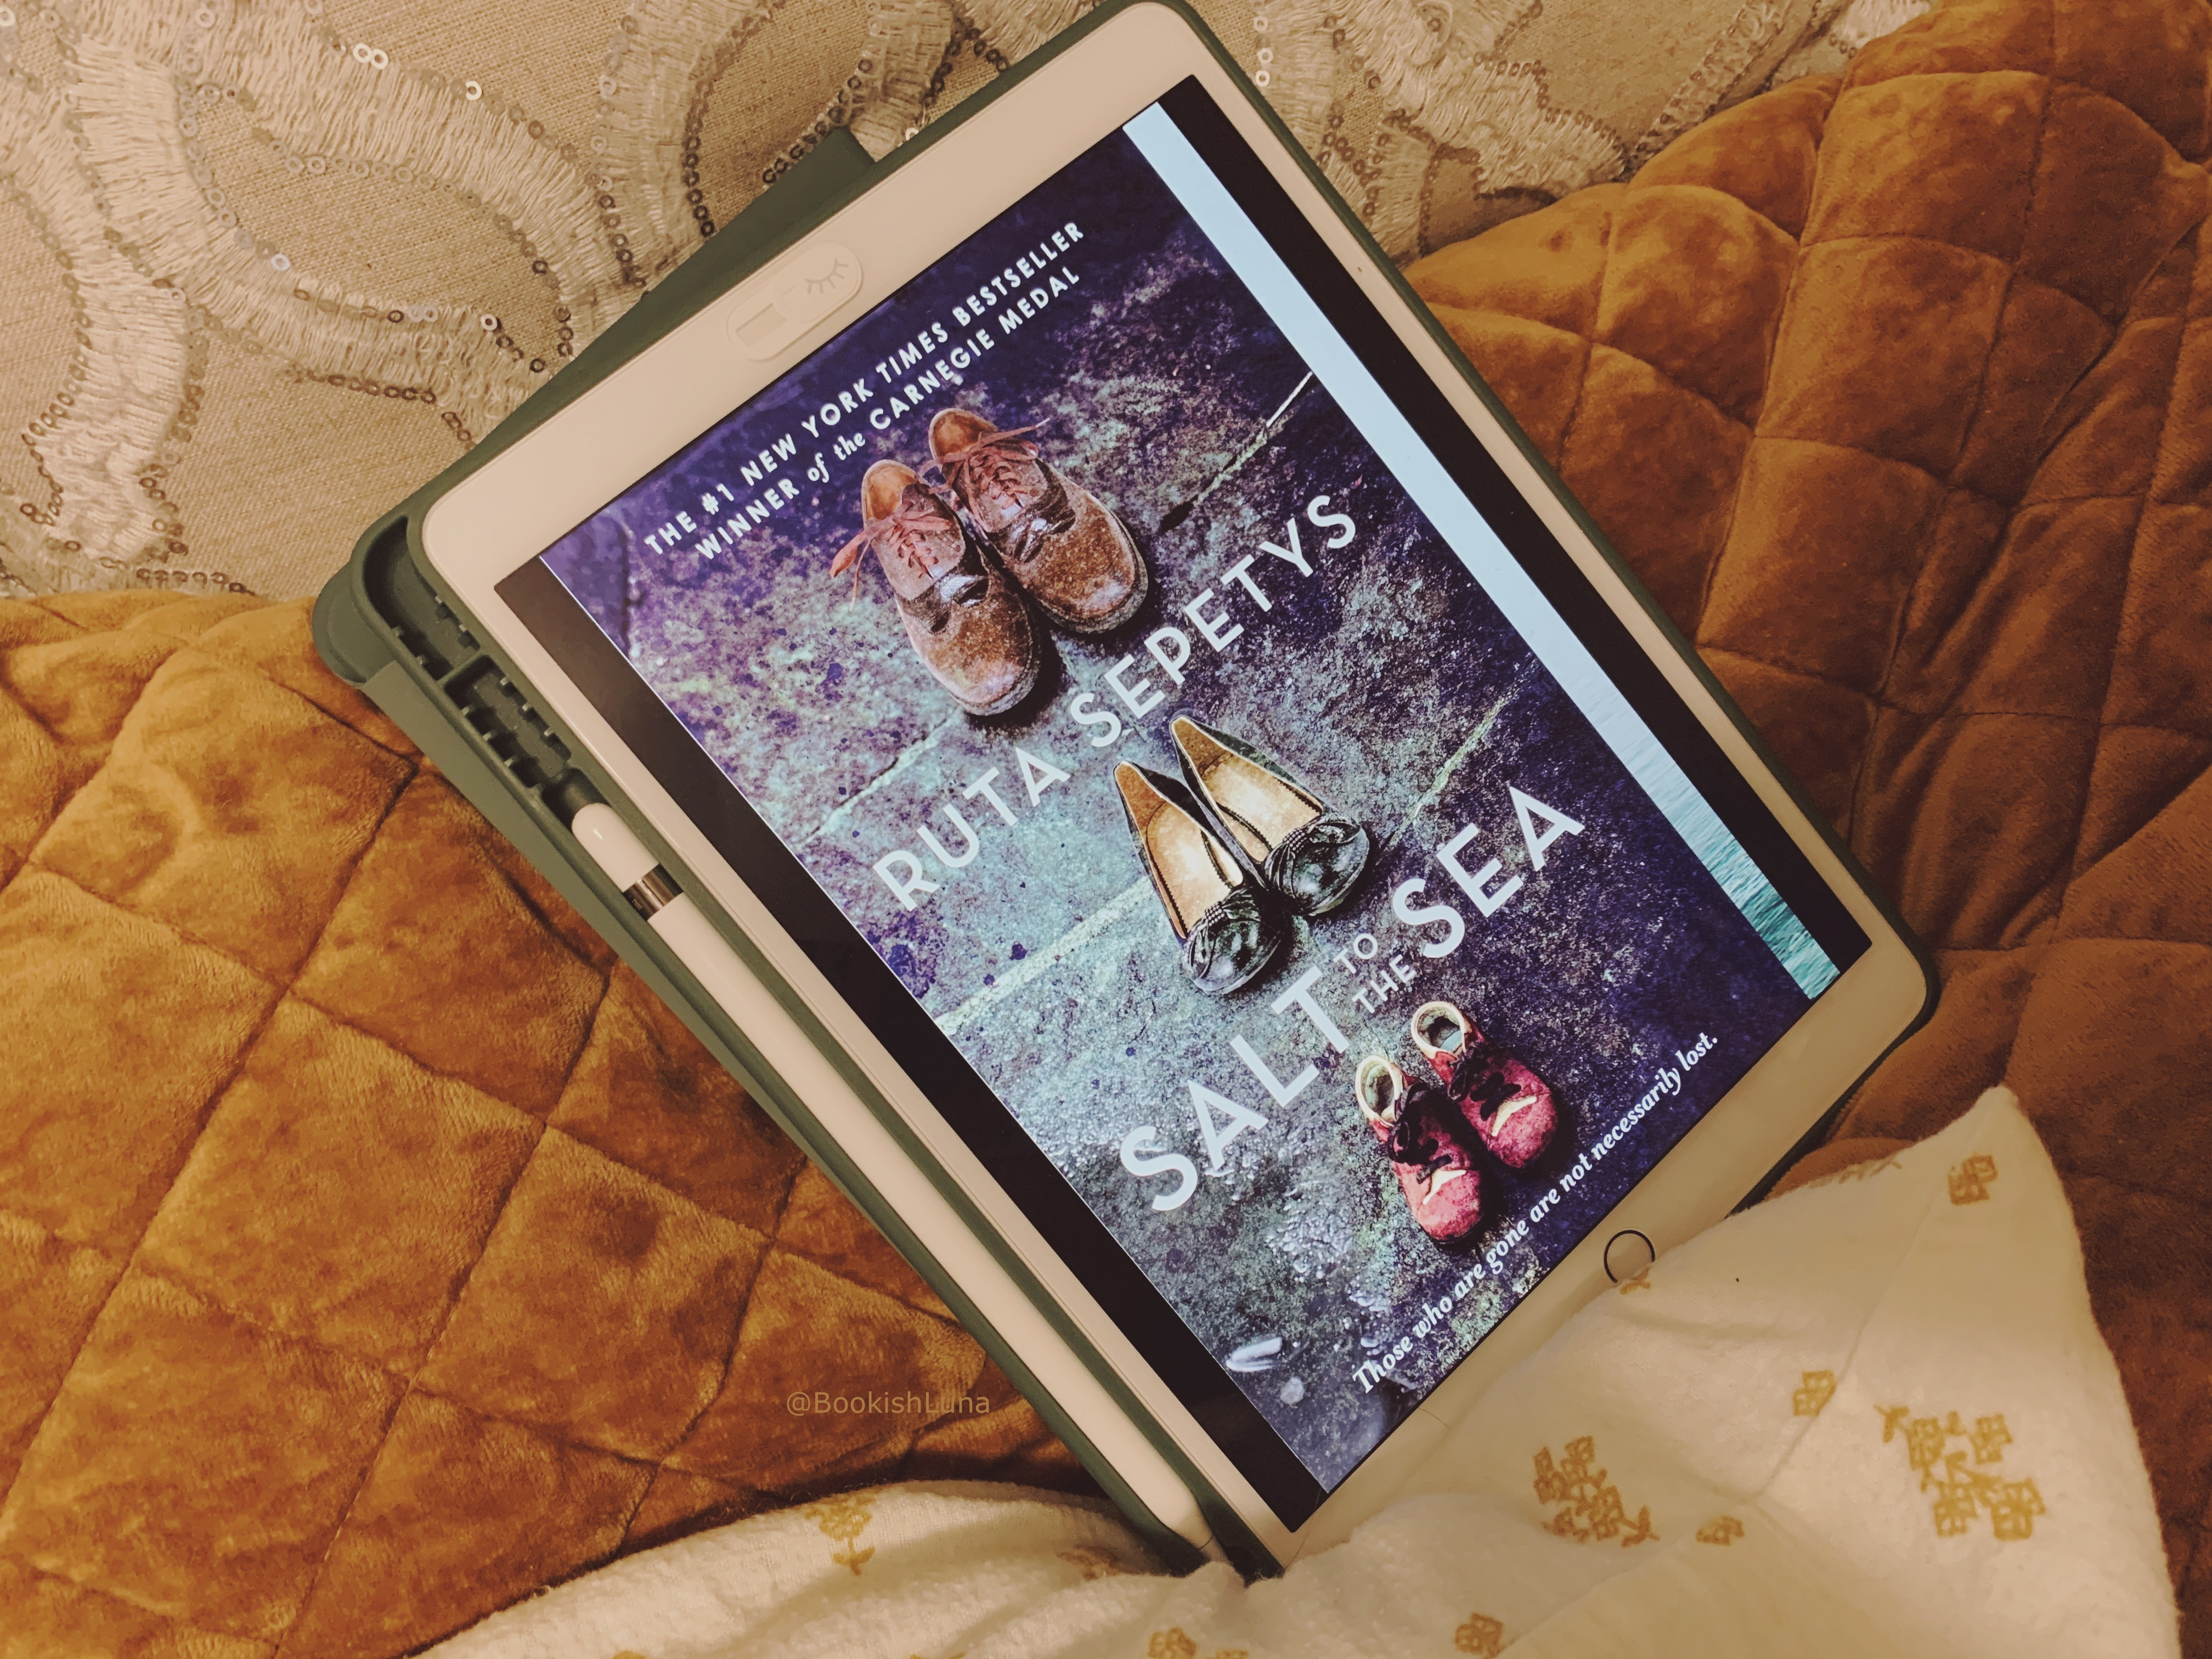 Salt to the Sea ebook on iPad placed on bed.